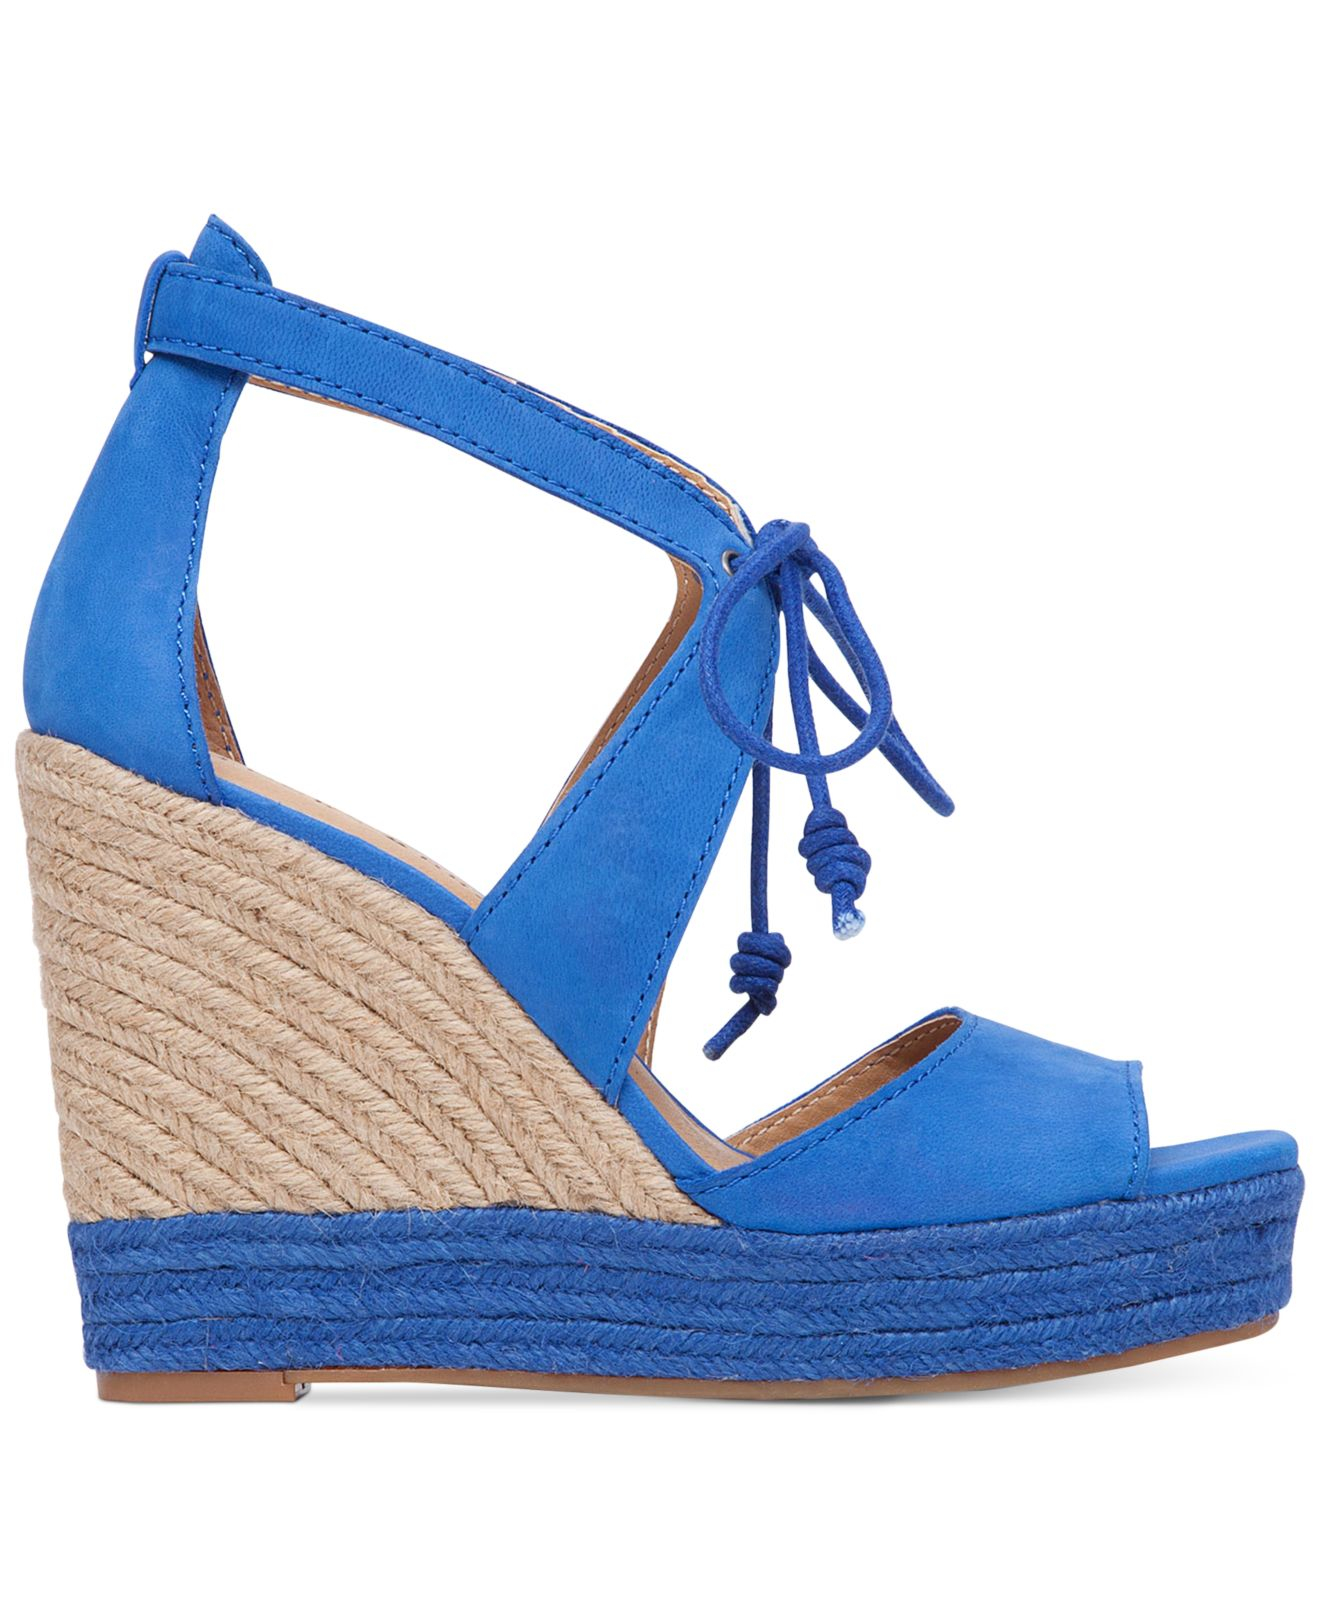 1d442e355cf Lyst - Lucky Brand Women s Listalia Wedge Lace-up Sandals in Blue